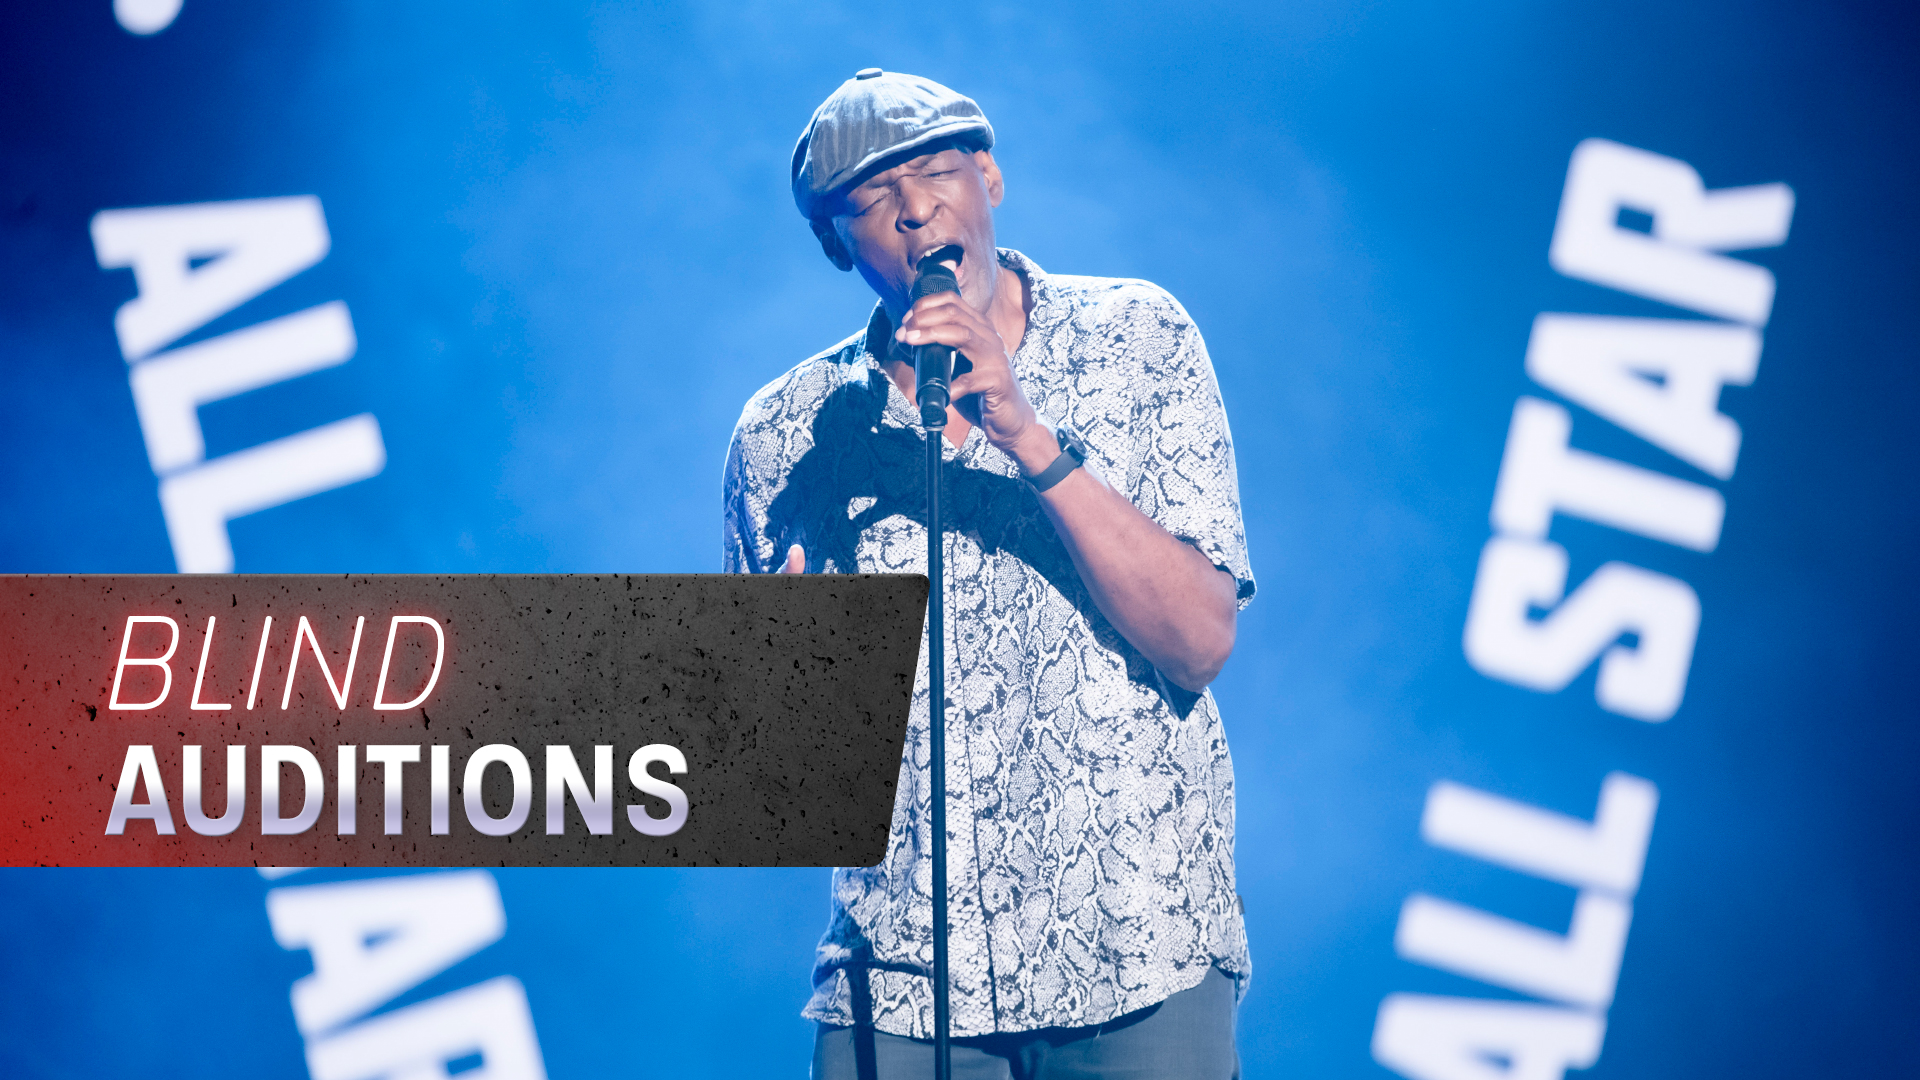 Blind Auditions: Steve Clisby 'Magic'